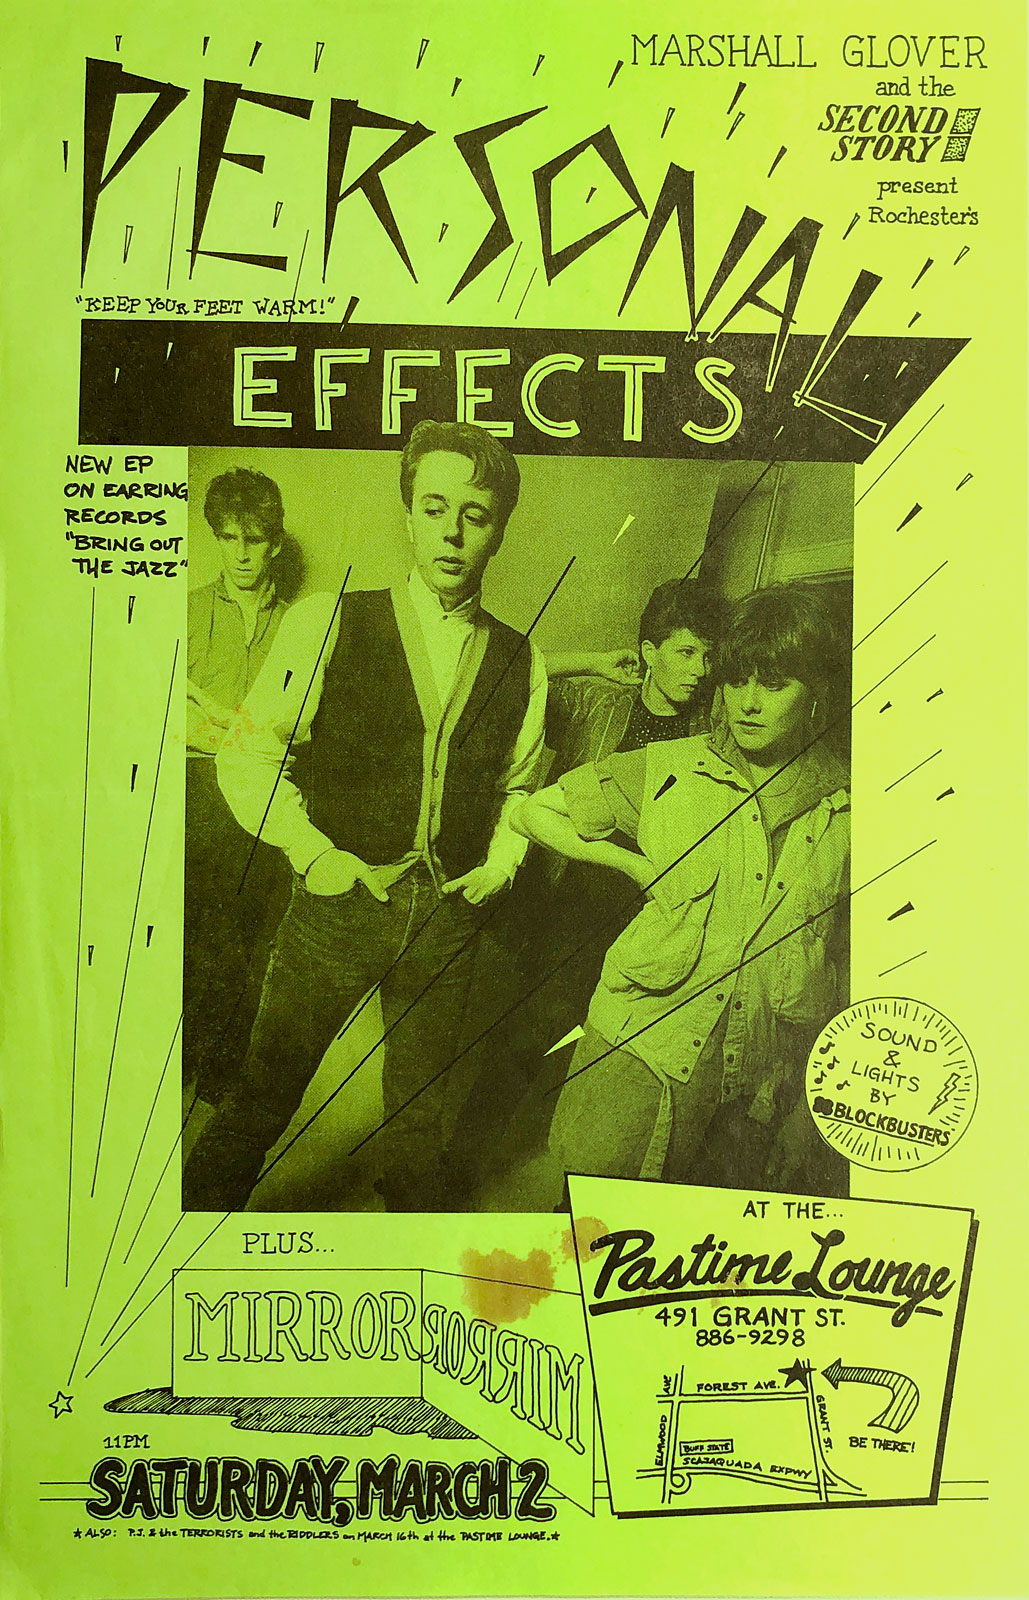 Poster for Personal Effects at the Pastime Lounge in Buffalo, New York on 03.02.1985